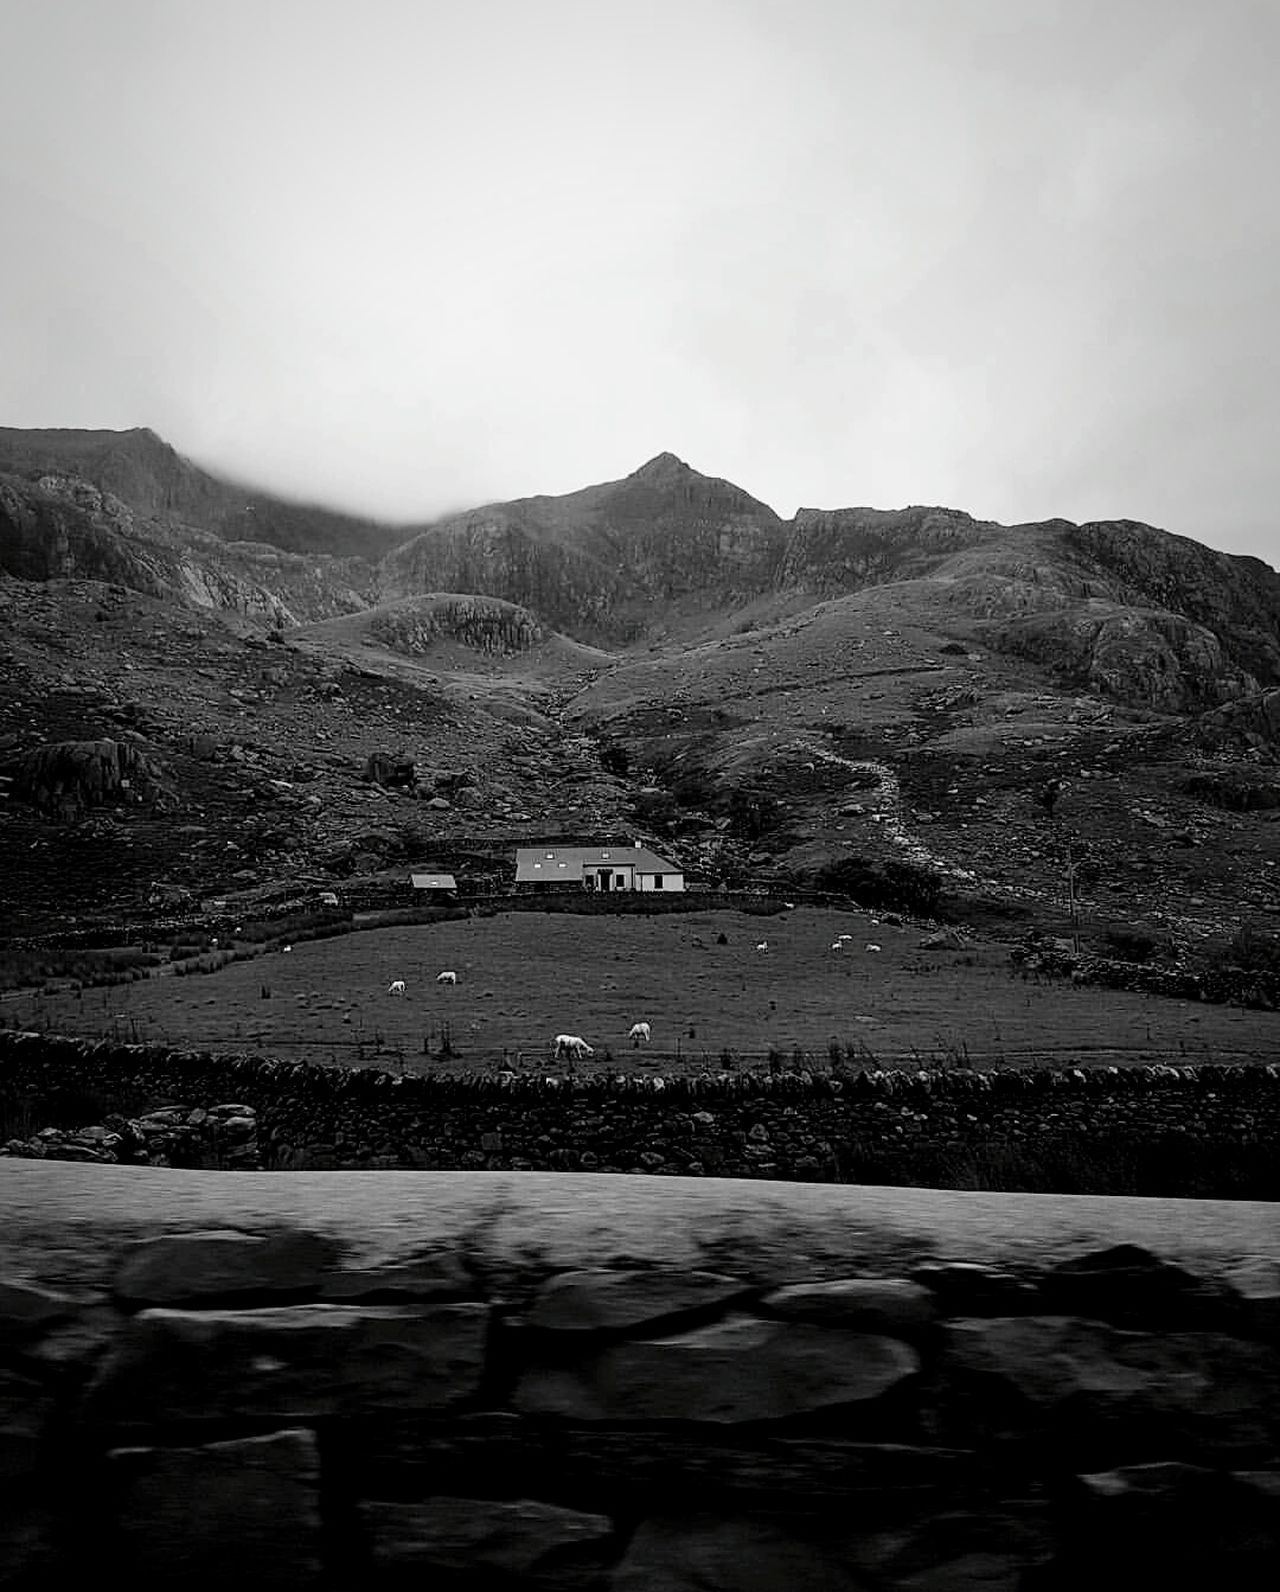 Living in motion Landscape Mountain Scenics Nature Mountain Range Outdoors Water Beauty In Nature Sky Day Snowdonia Wales Vintage Backgrounds Winding Road Mountain Road Journey Travel Rustic Cottage Clouds